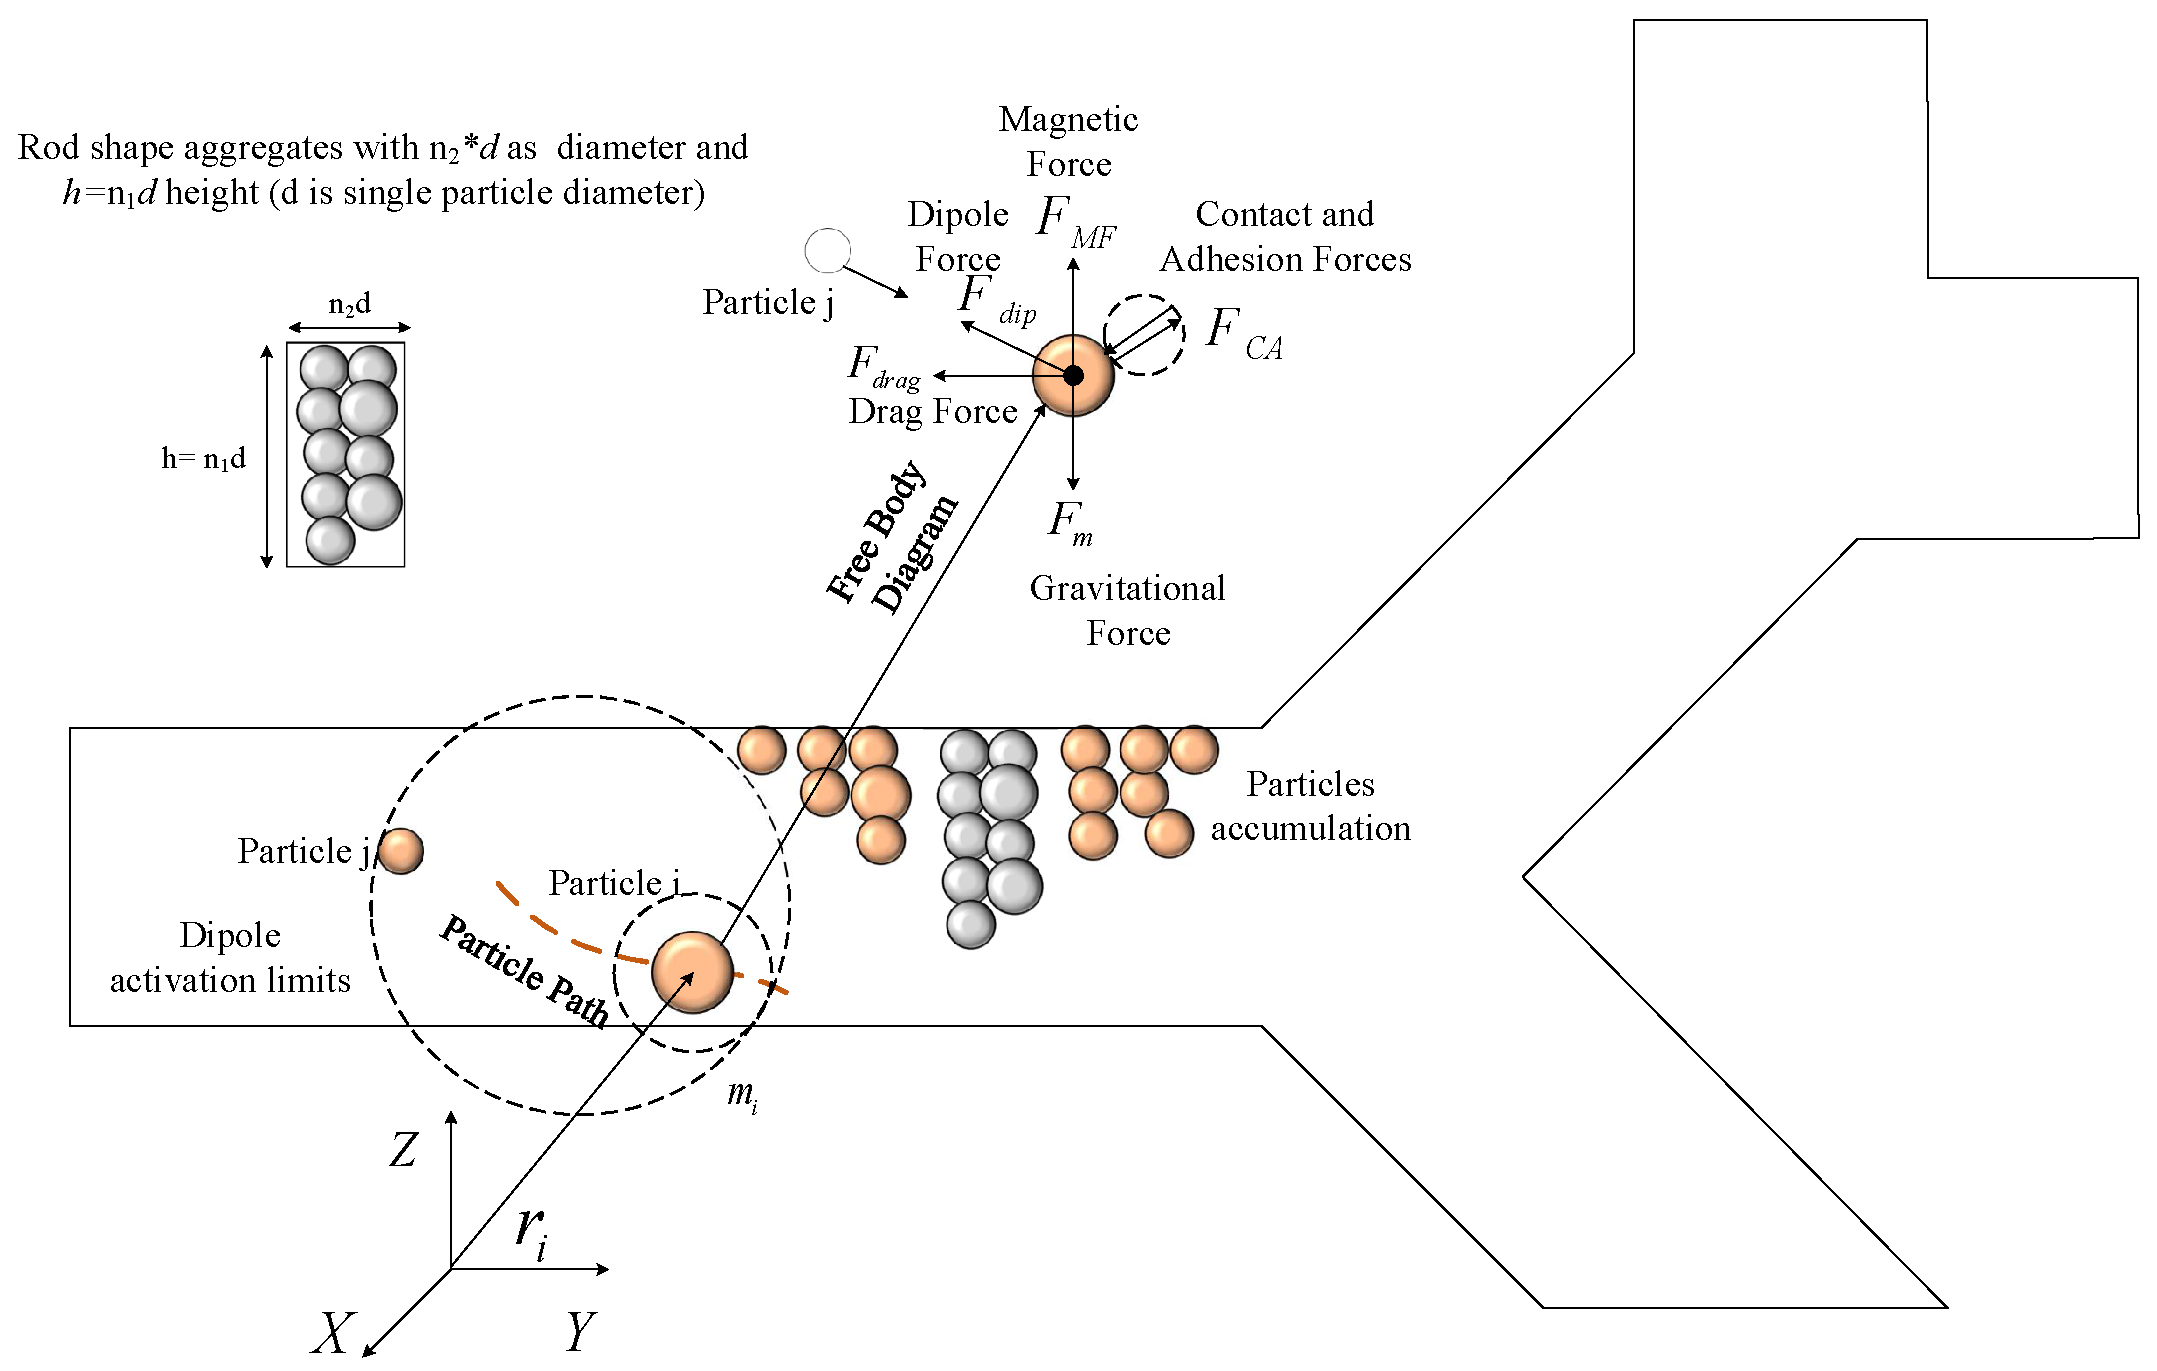 Nanomaterials Free Full Text A Novel Magnetic Actuation Scheme In Any Case The Body Diagram And 2d Dynamic Analysis Is Shown 08 00003 G002